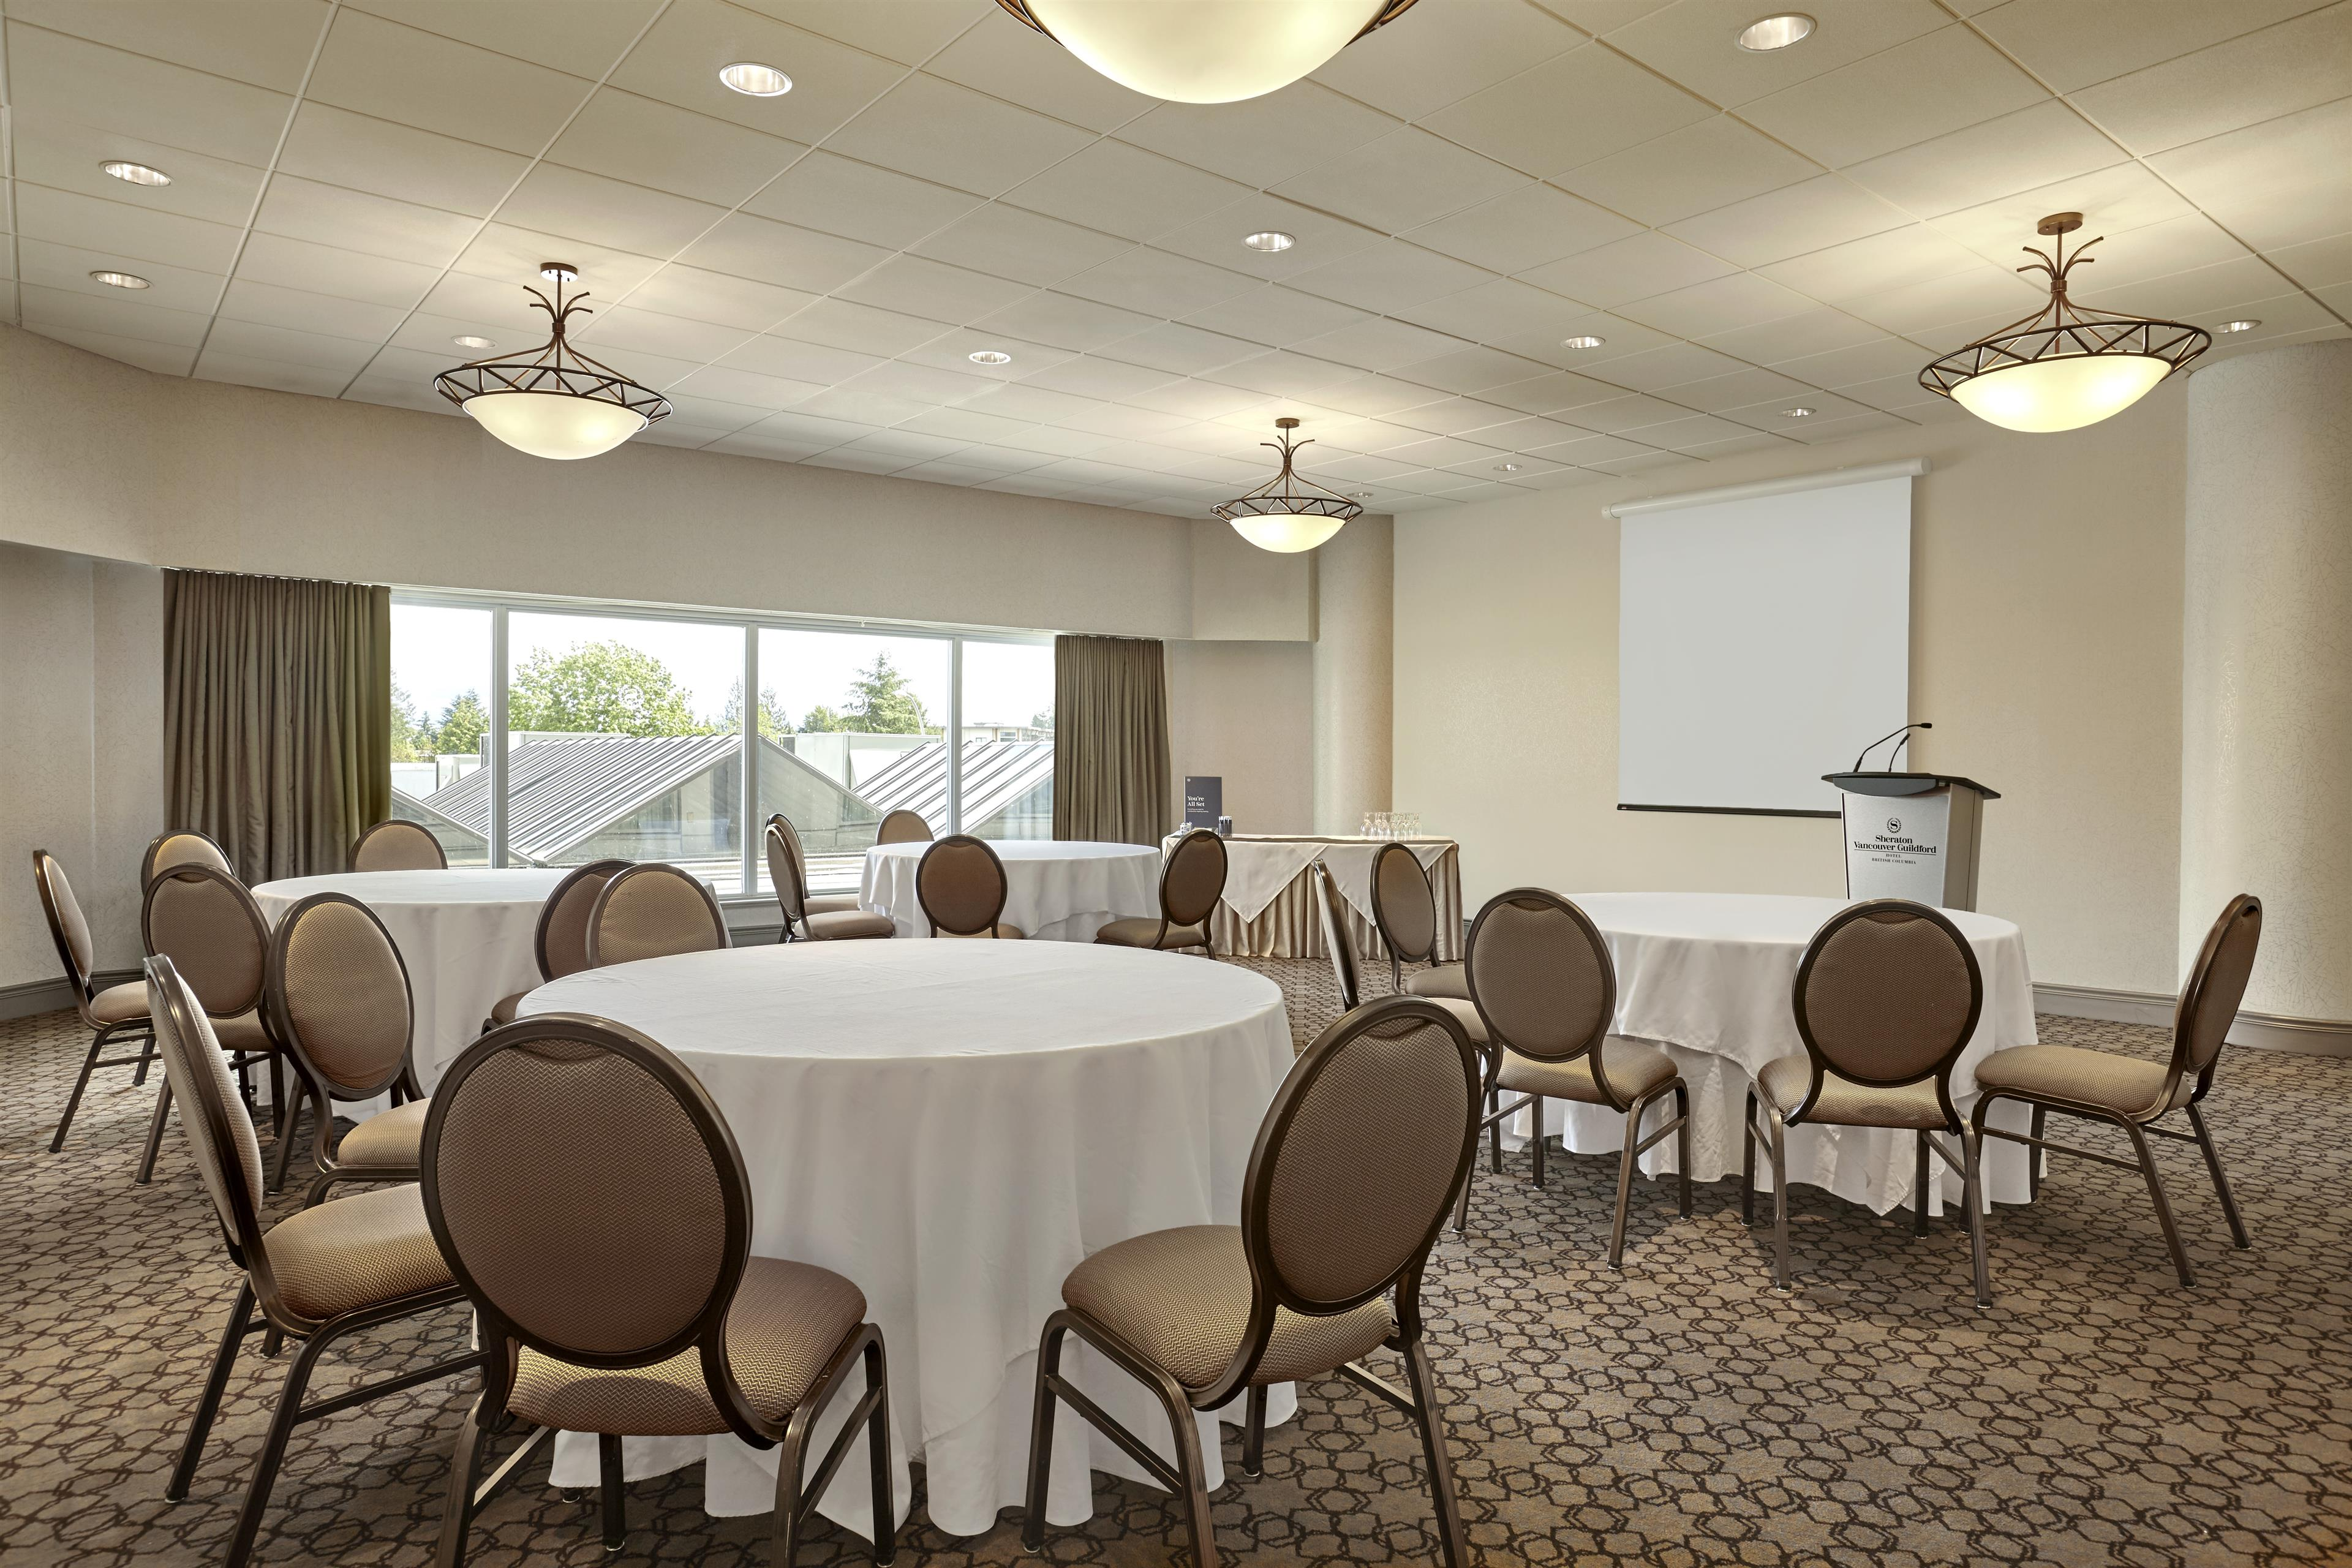 Sheraton Vancouver Guildford Hotel in Surrey: Green Timbers Room Setup in Rounds